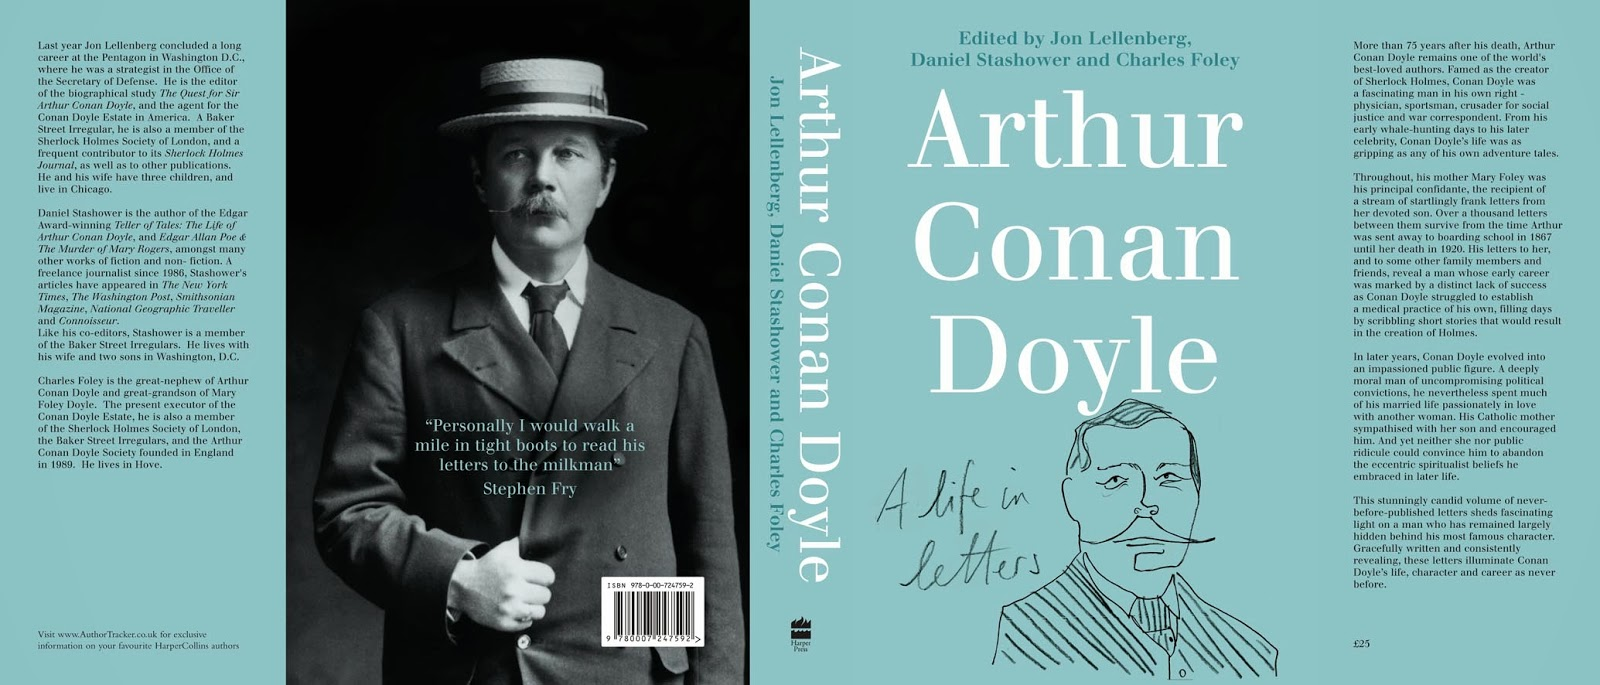 a study of the life of arthur conan doyle A study in scarlet, by arthur conan doyle the science of deduction and analysis is one which can only be acquired by long and patient study, nor is life long.